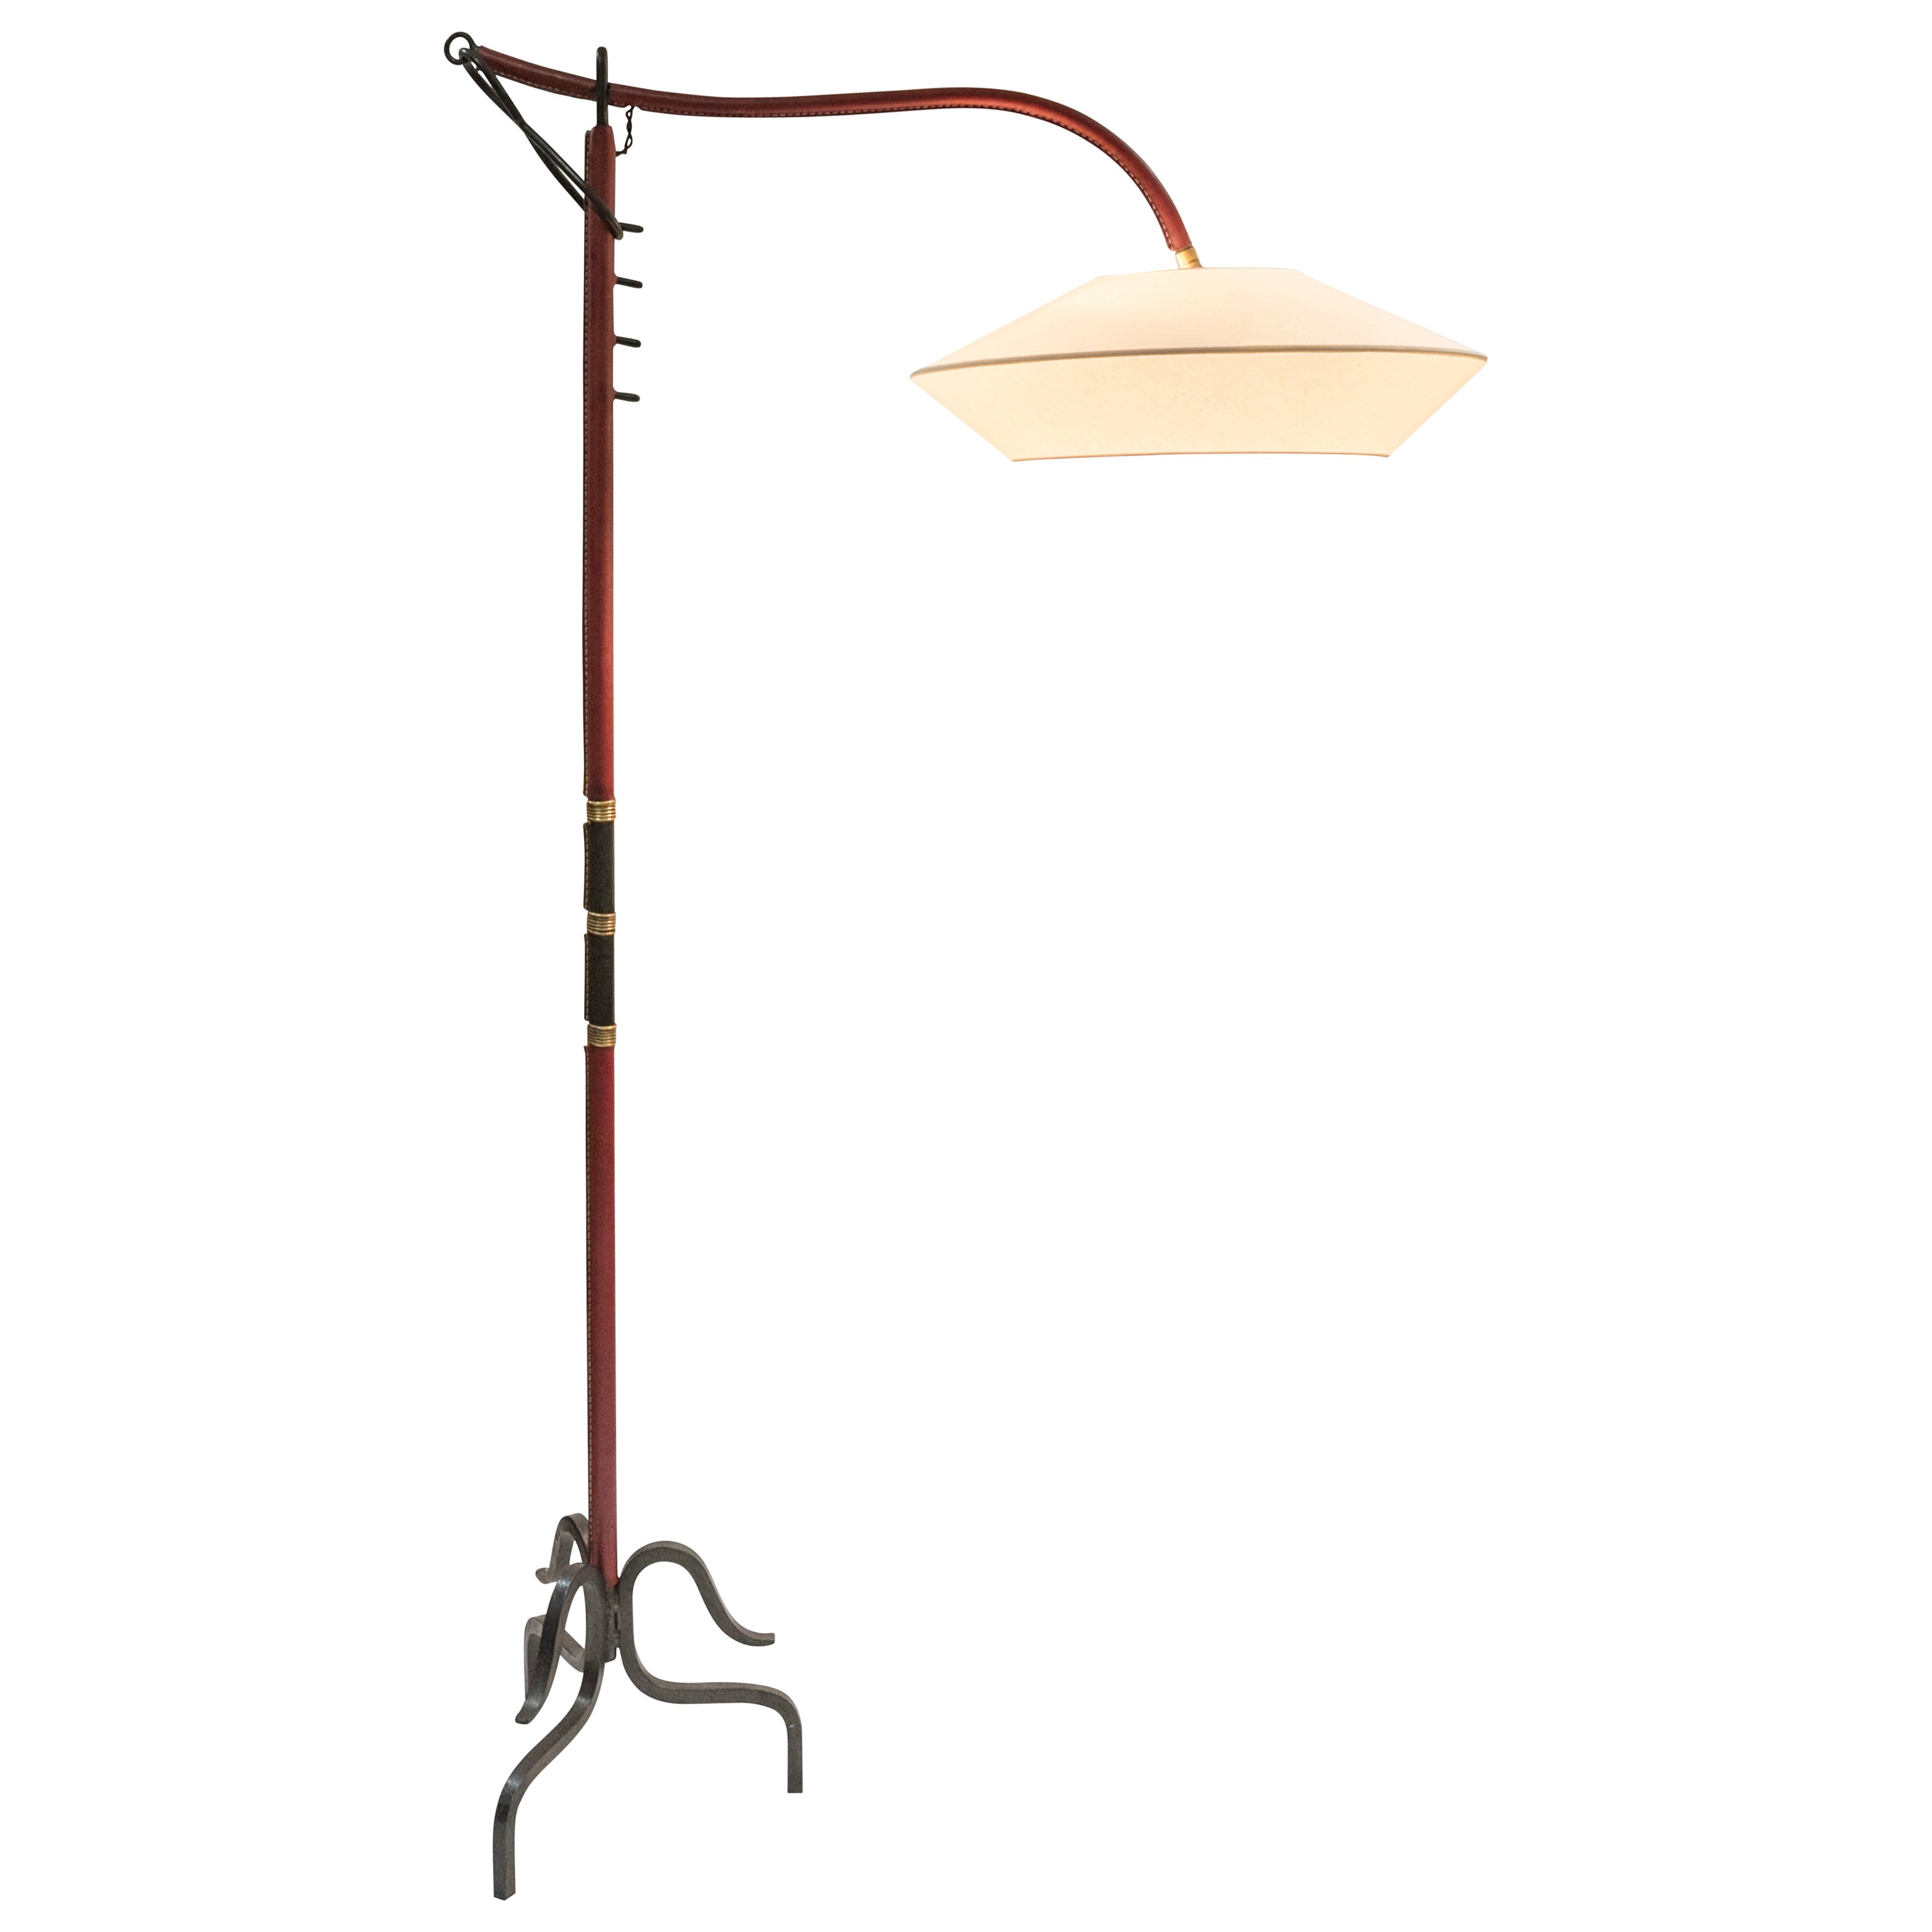 1950s Stitched Leather Floor Lamp by Jacques Adnet